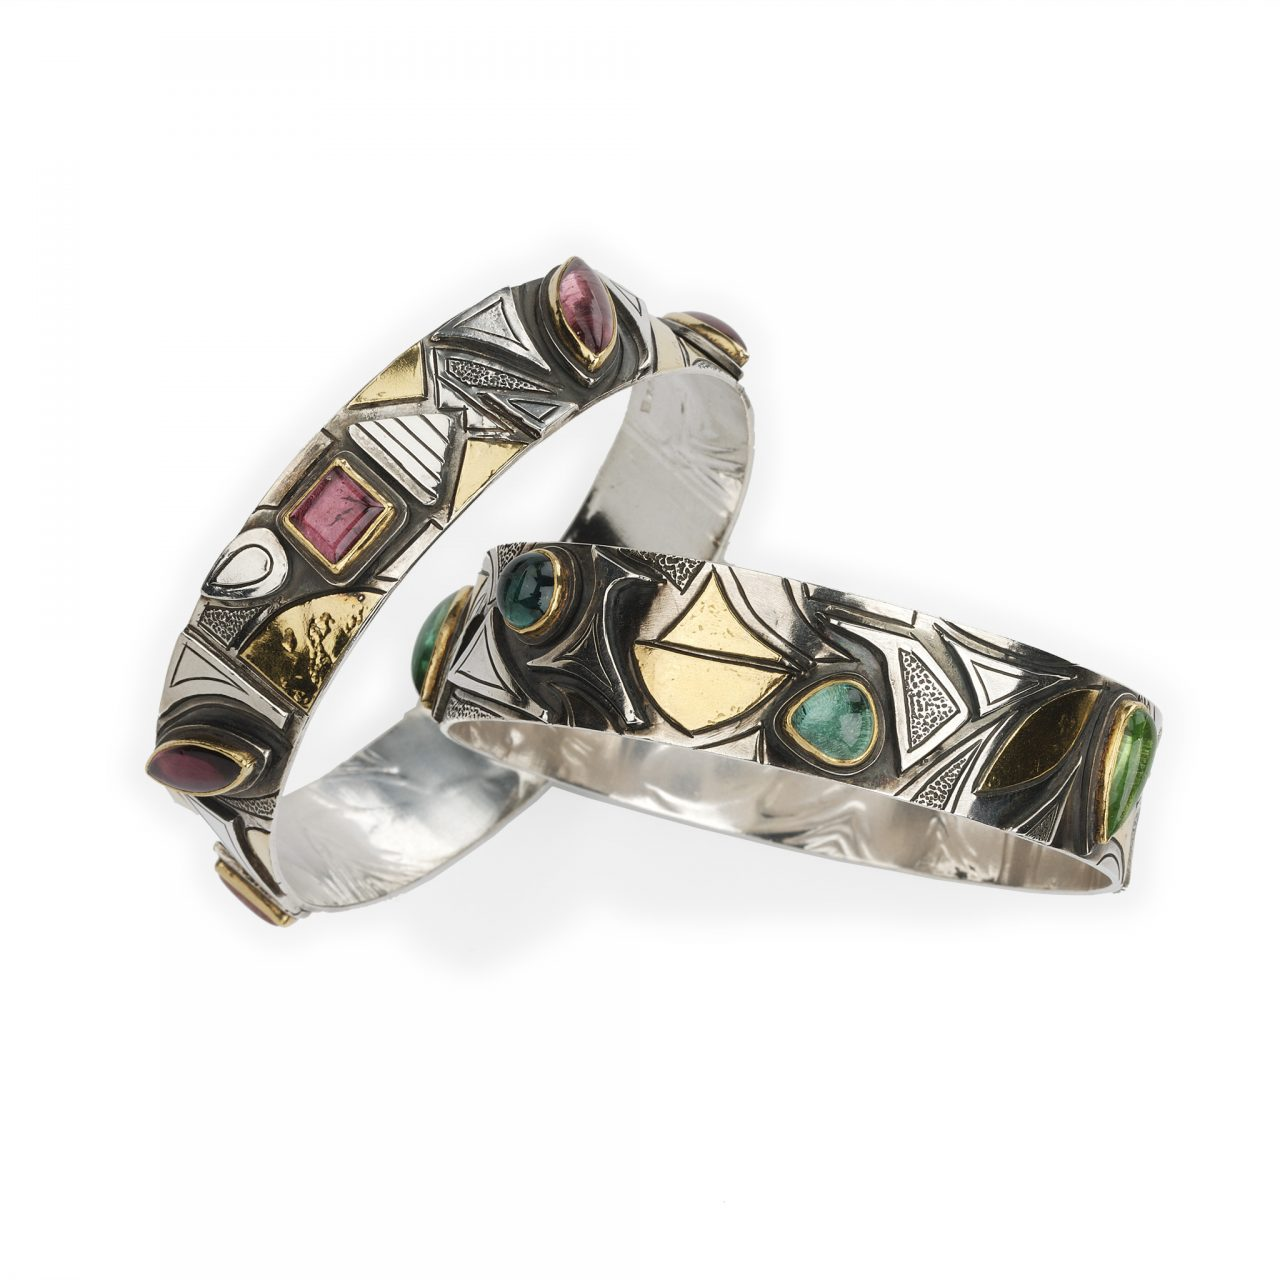 Bracelets with Tourmalines